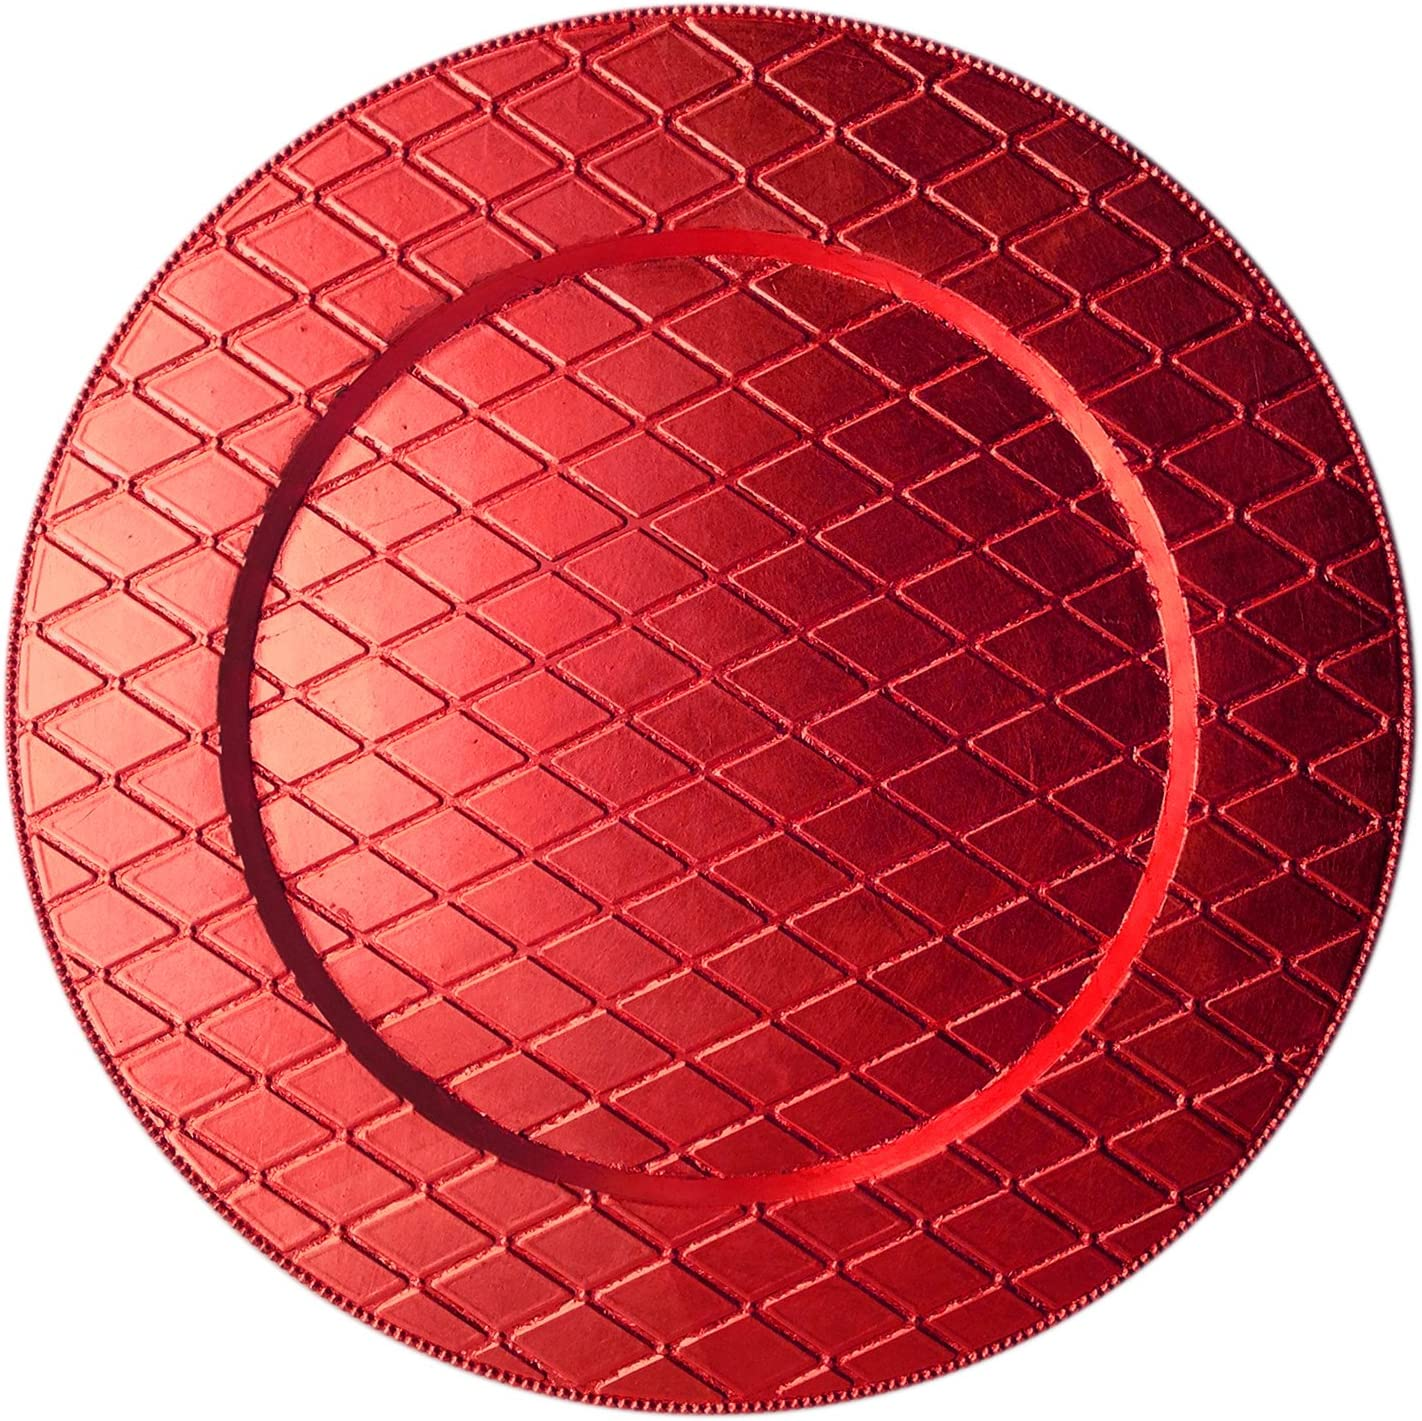 ChargeIt by Jay Plaid Design Free shipping / New Charger Max 42% OFF Plate Red